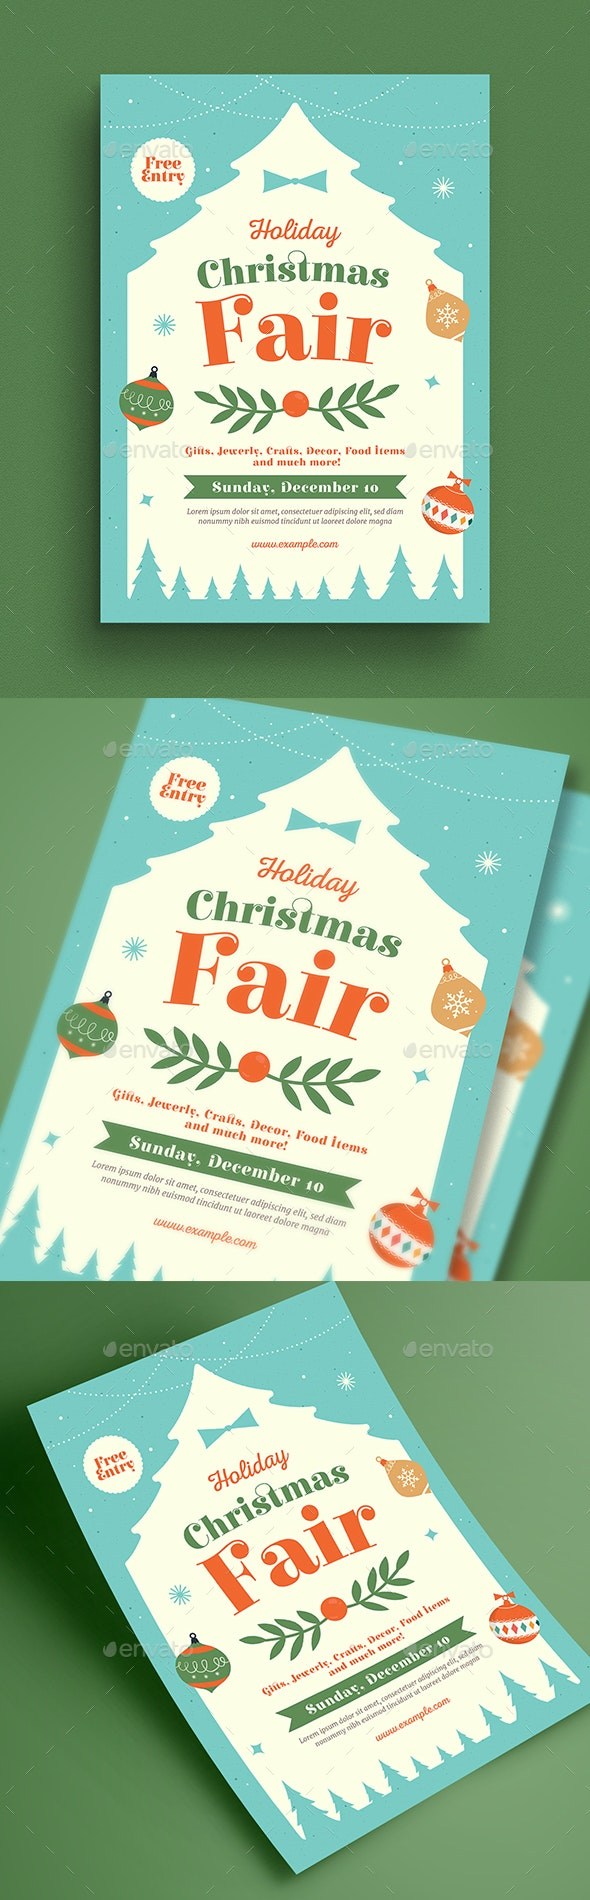 Holiday Christmas Fair Flyer - Holidays Events